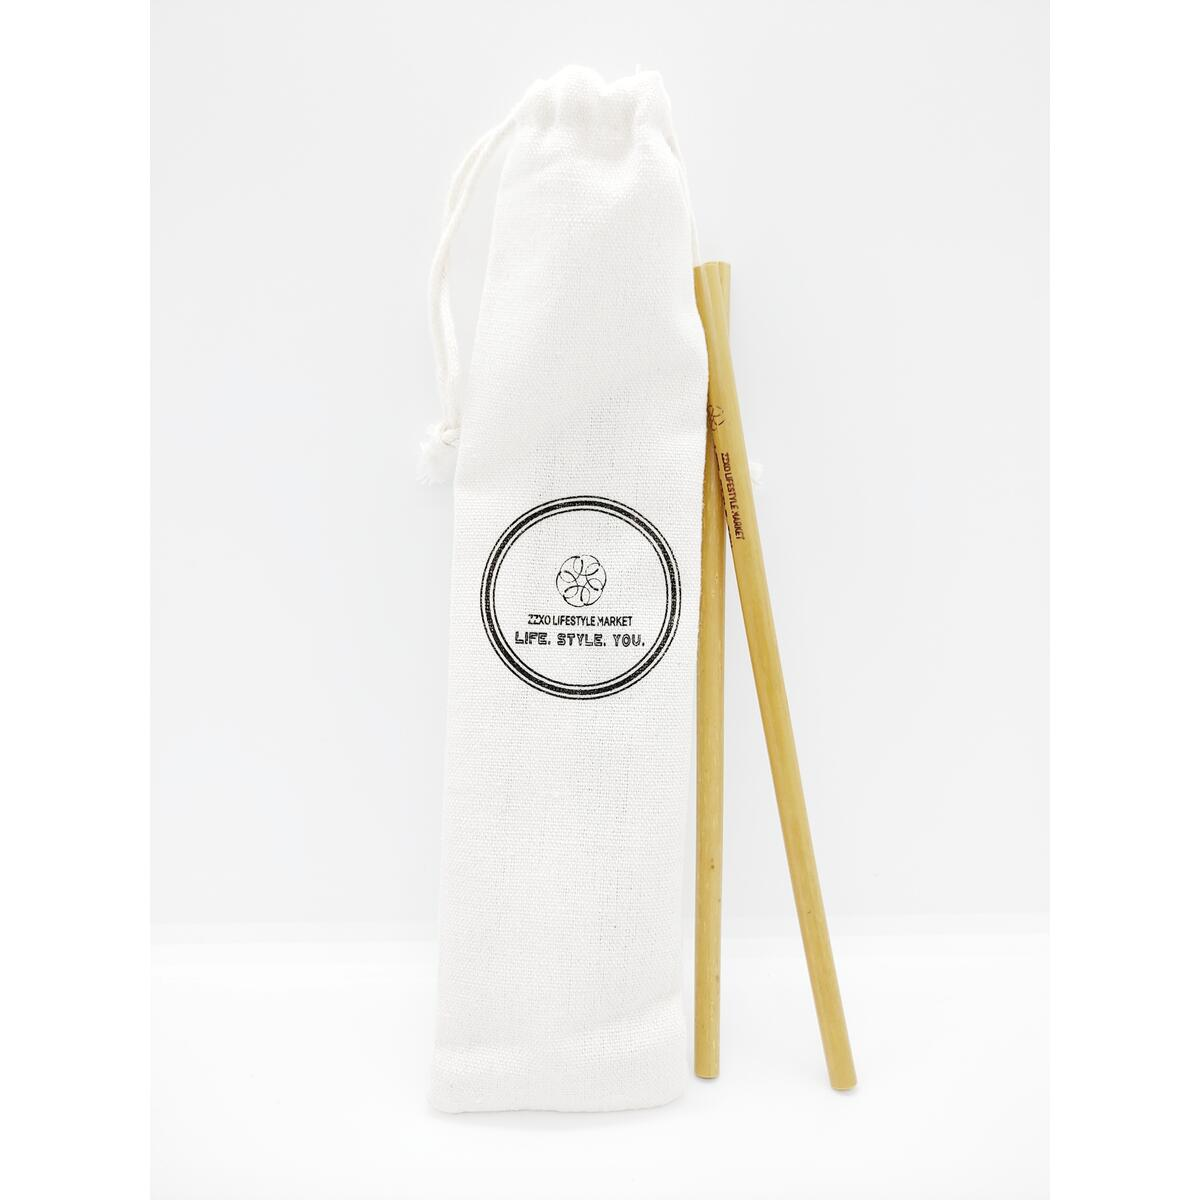 Eco Friendly - Reusable - Bamboo Straws (5pk)